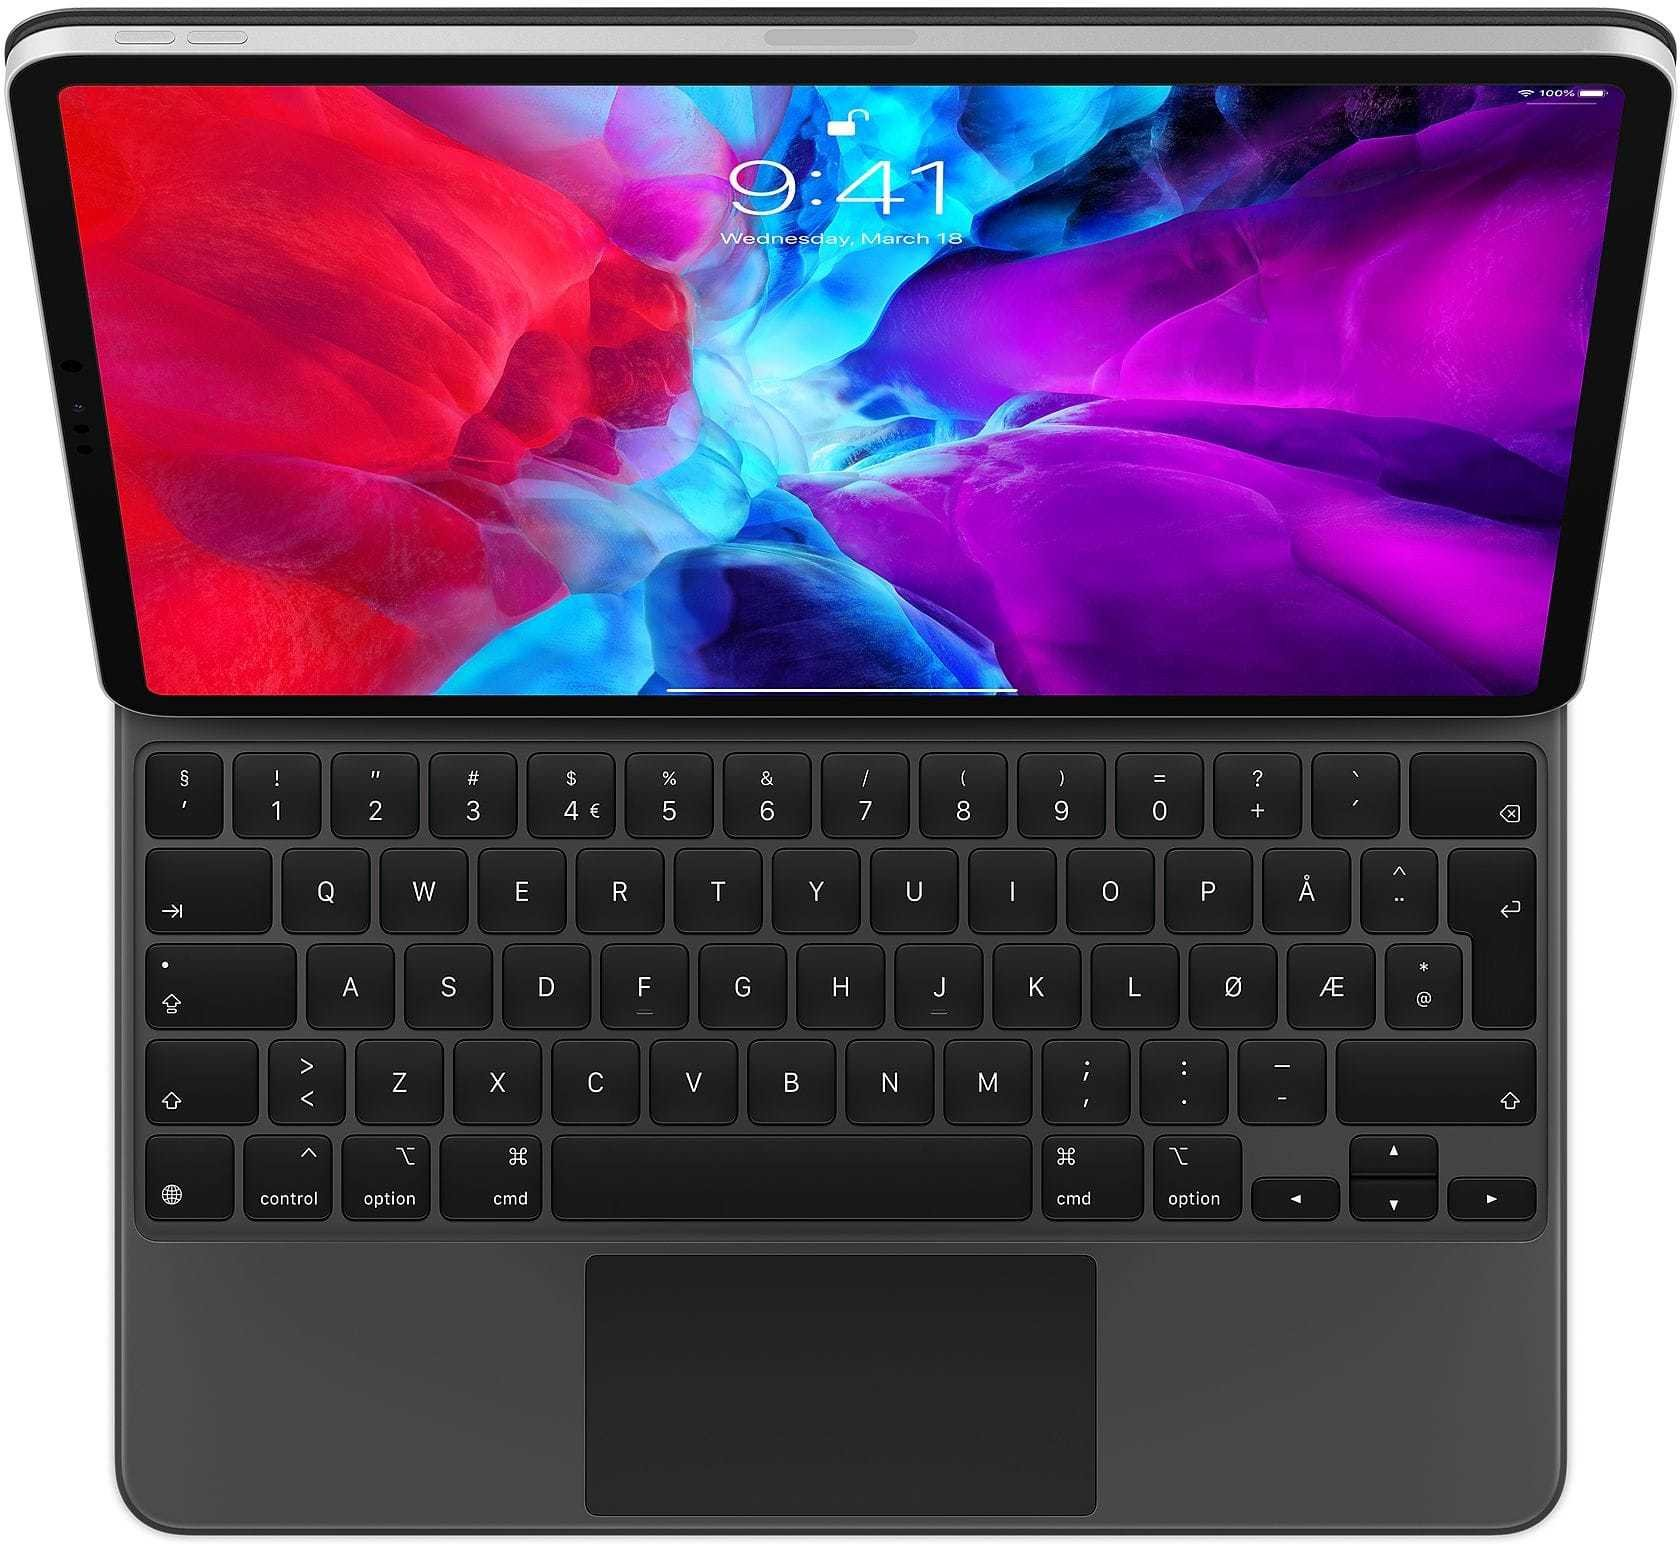 Best pris på Apple Smart Keyboard Folio 12.9 Se priser